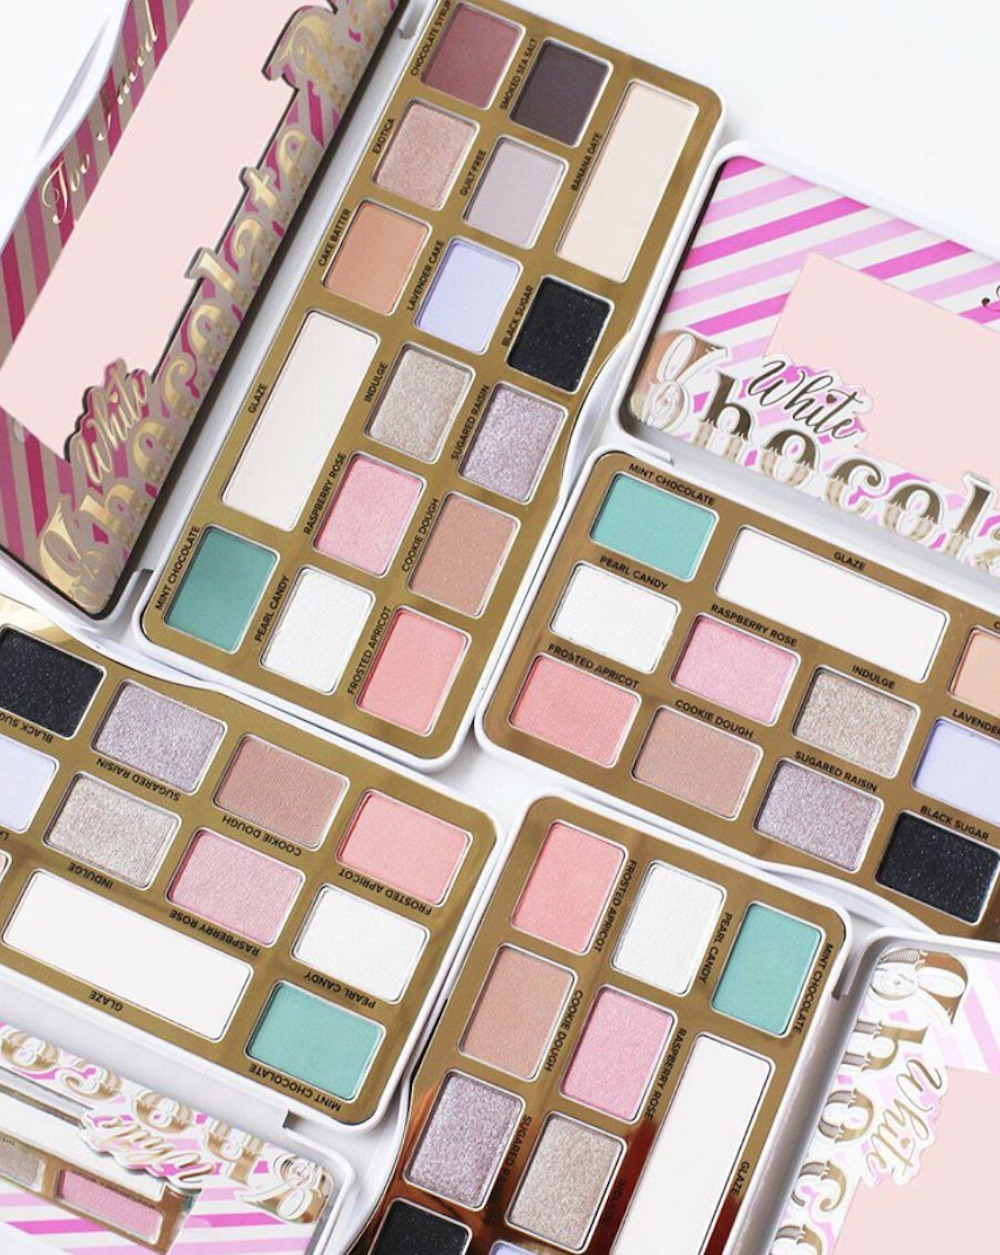 Too Faced's White Chocolate eyeshadow palette dropped early at Sephora, and it's oh-so-sweet